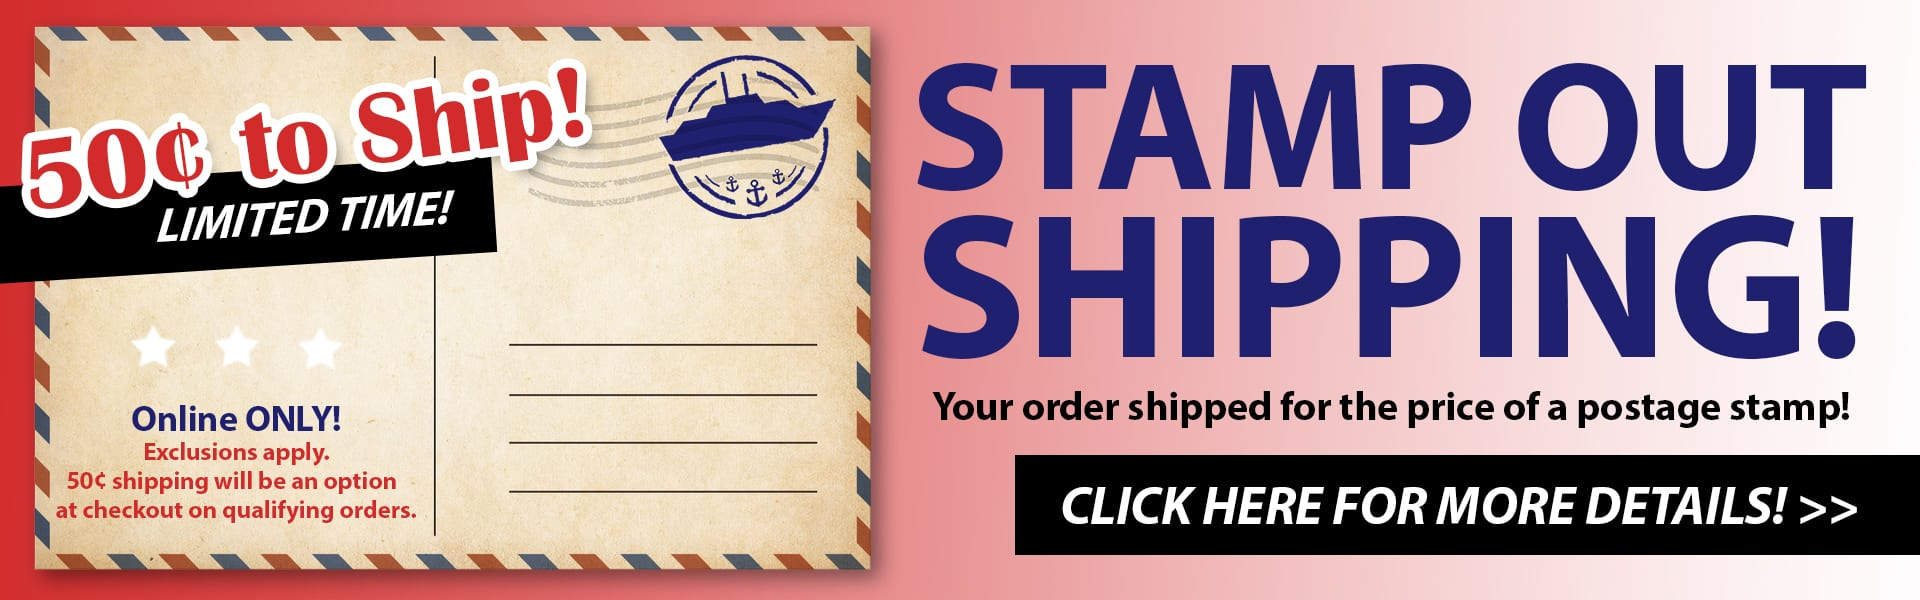 Stamp Out Shipping!